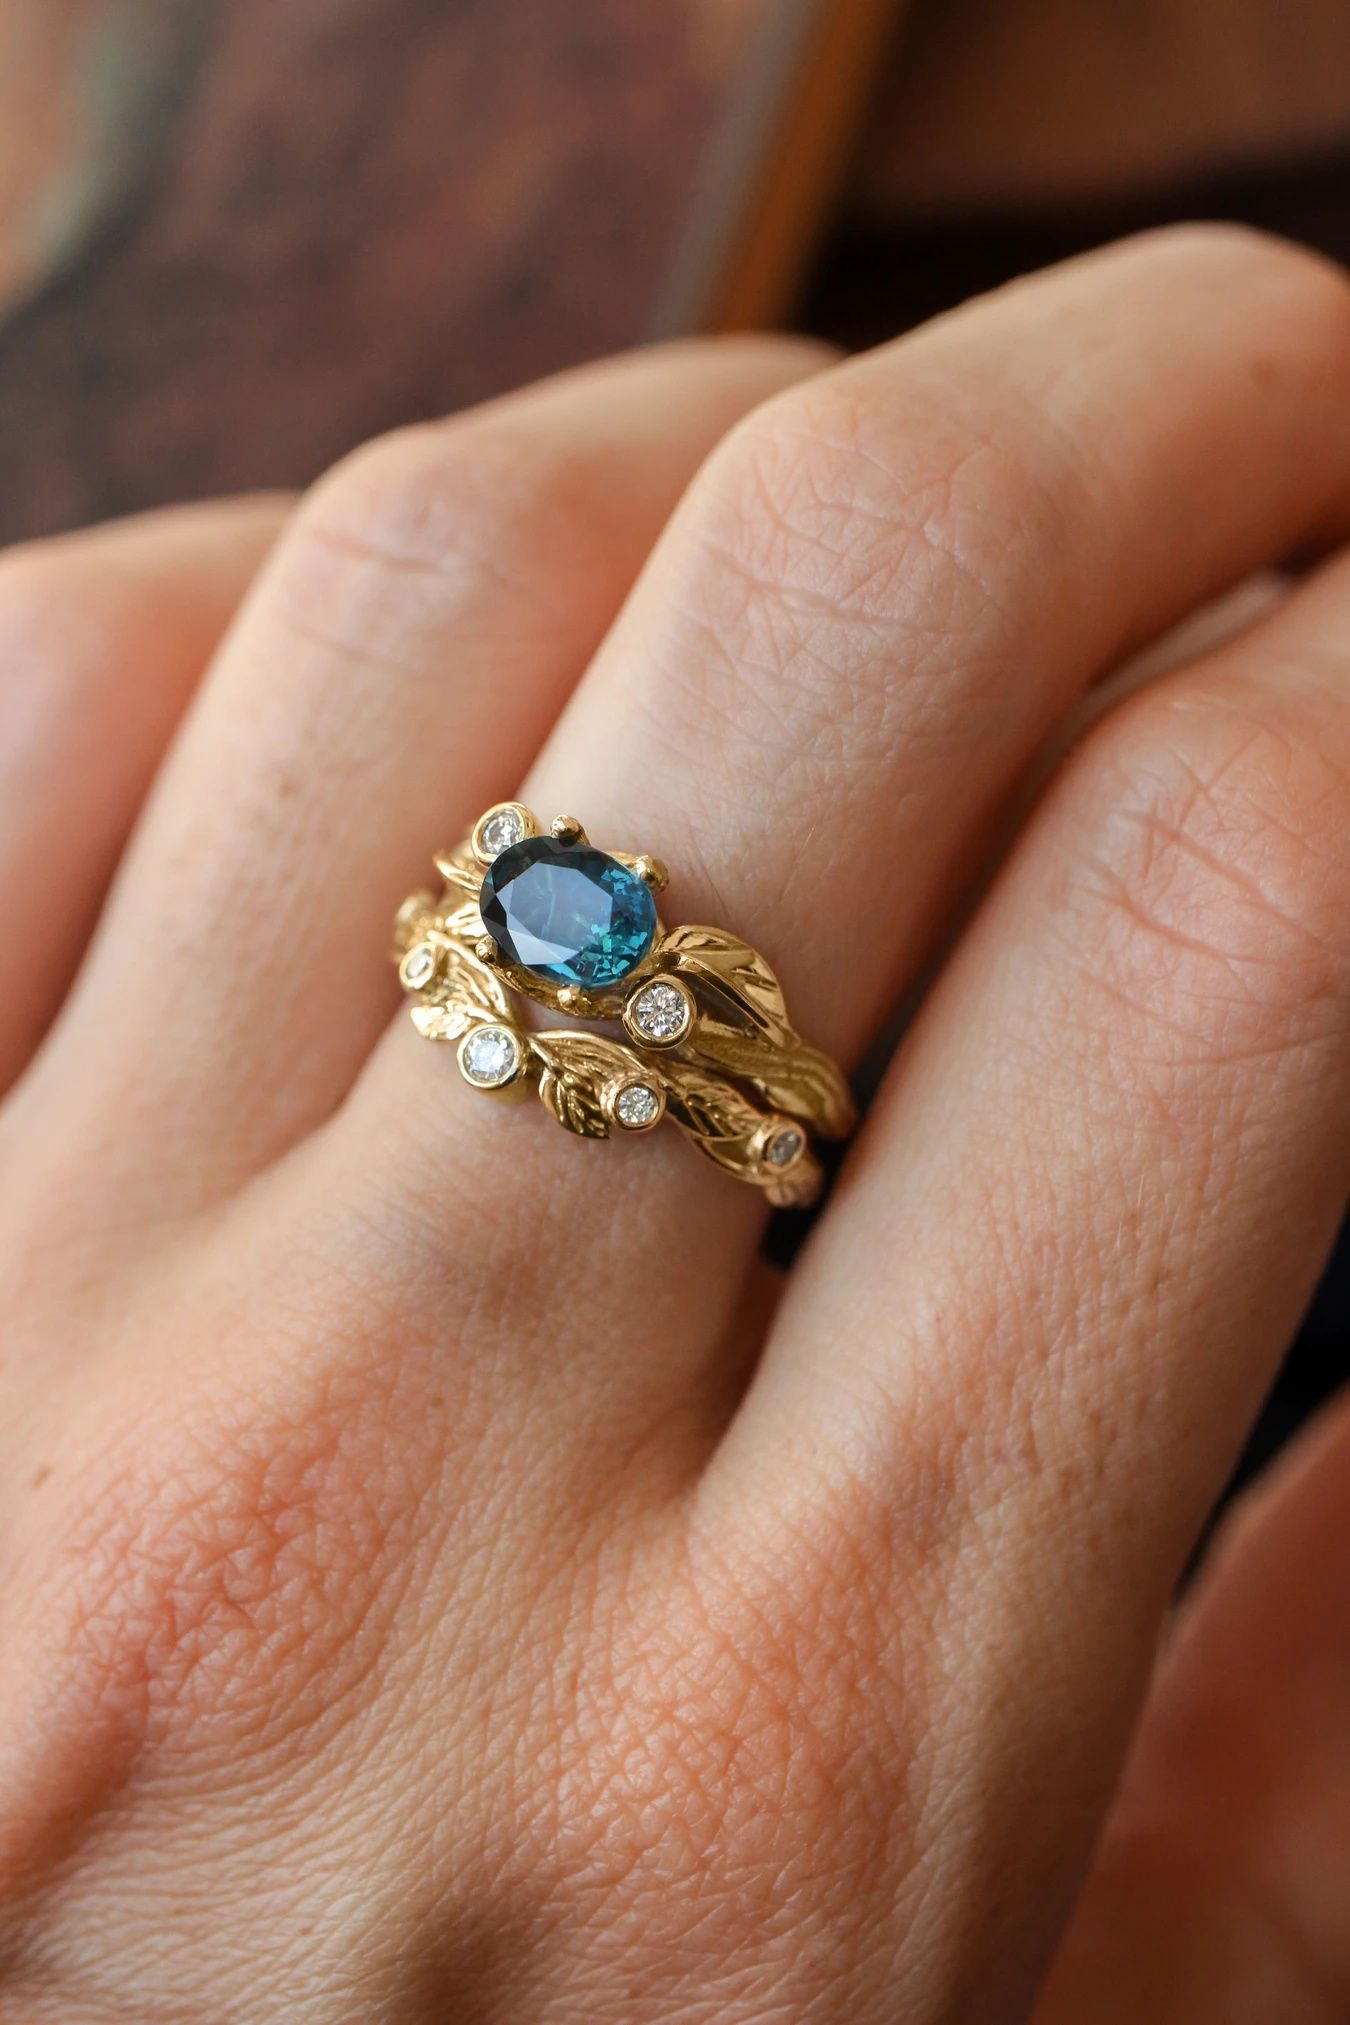 Sapphire engagement and wedding band set, stacking rings